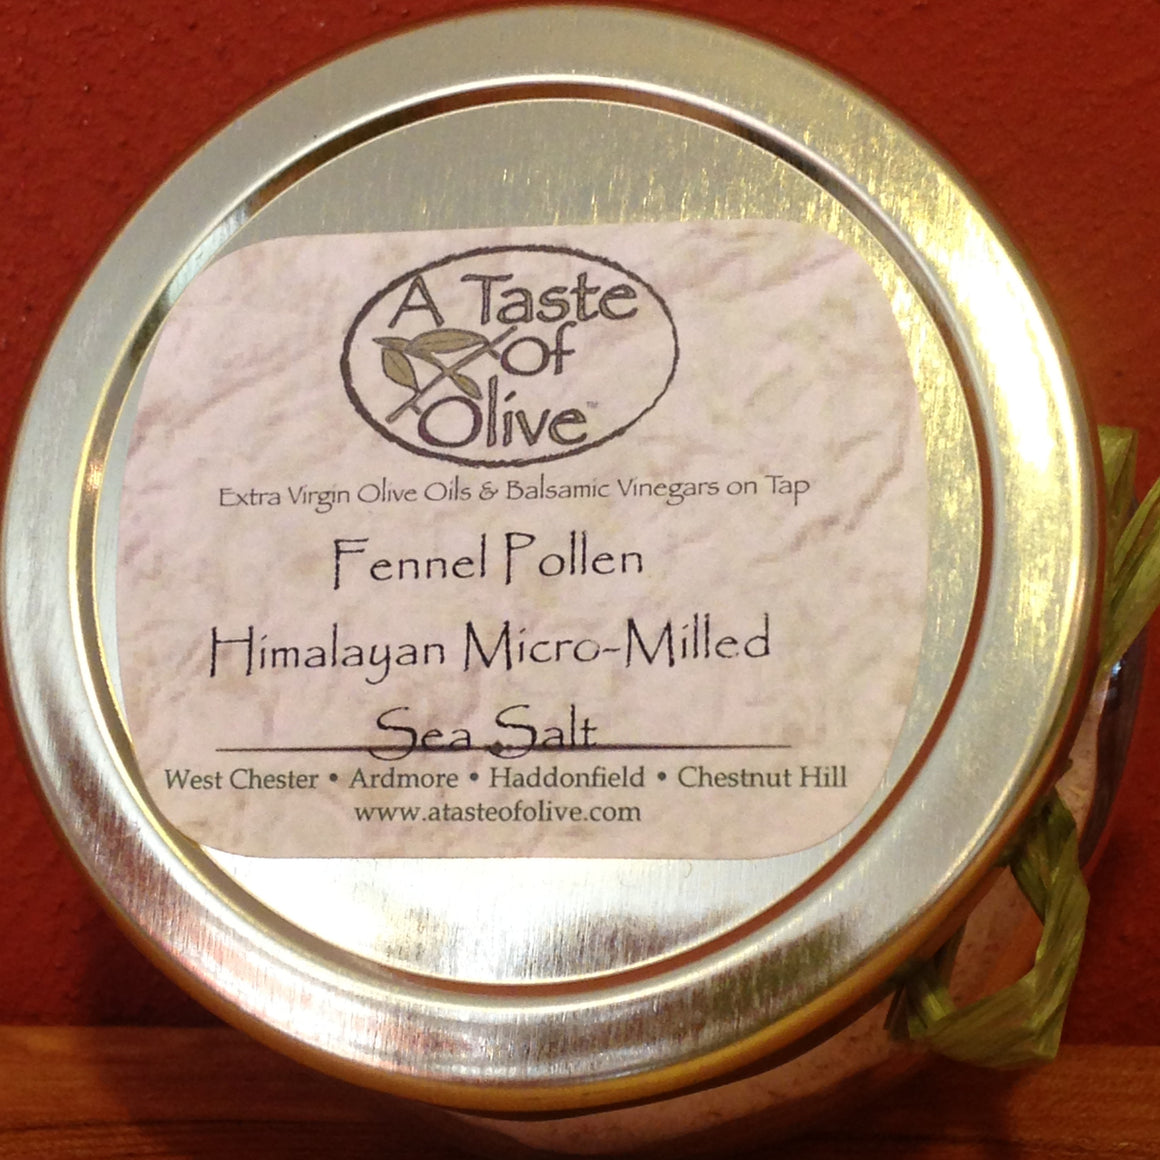 Fennel Pollen Himalayan Micro-Milled Sea Salt - A Taste of Olive